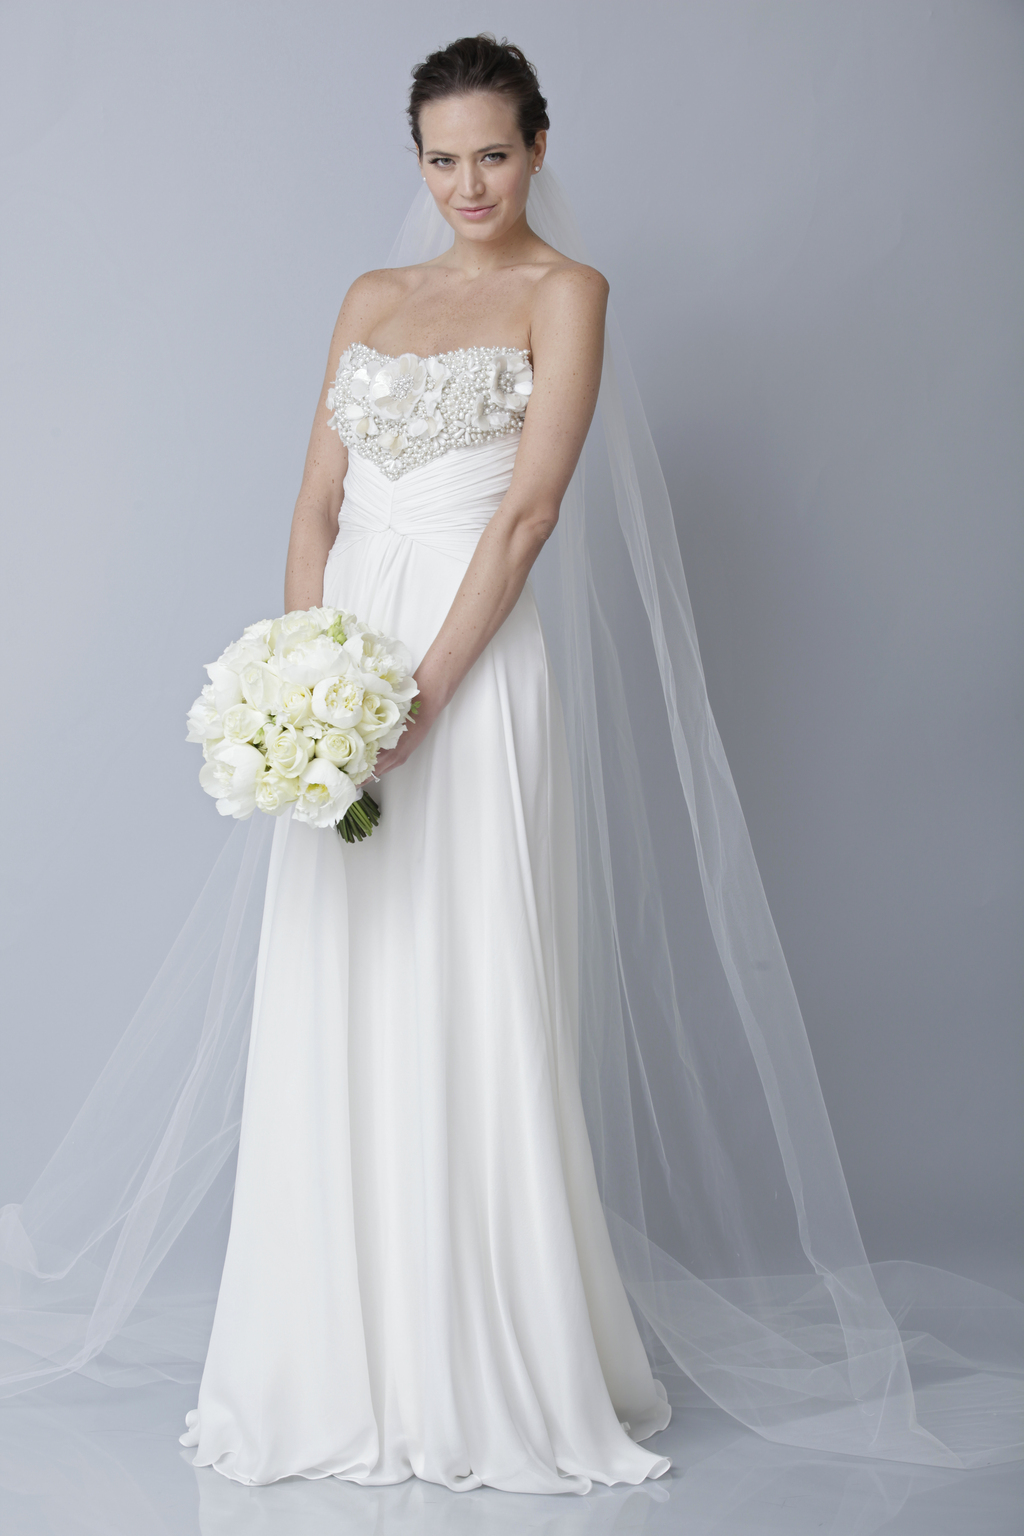 Theia-white-collection-wedding-dress-spring-2013-bridal-gown-890008.full